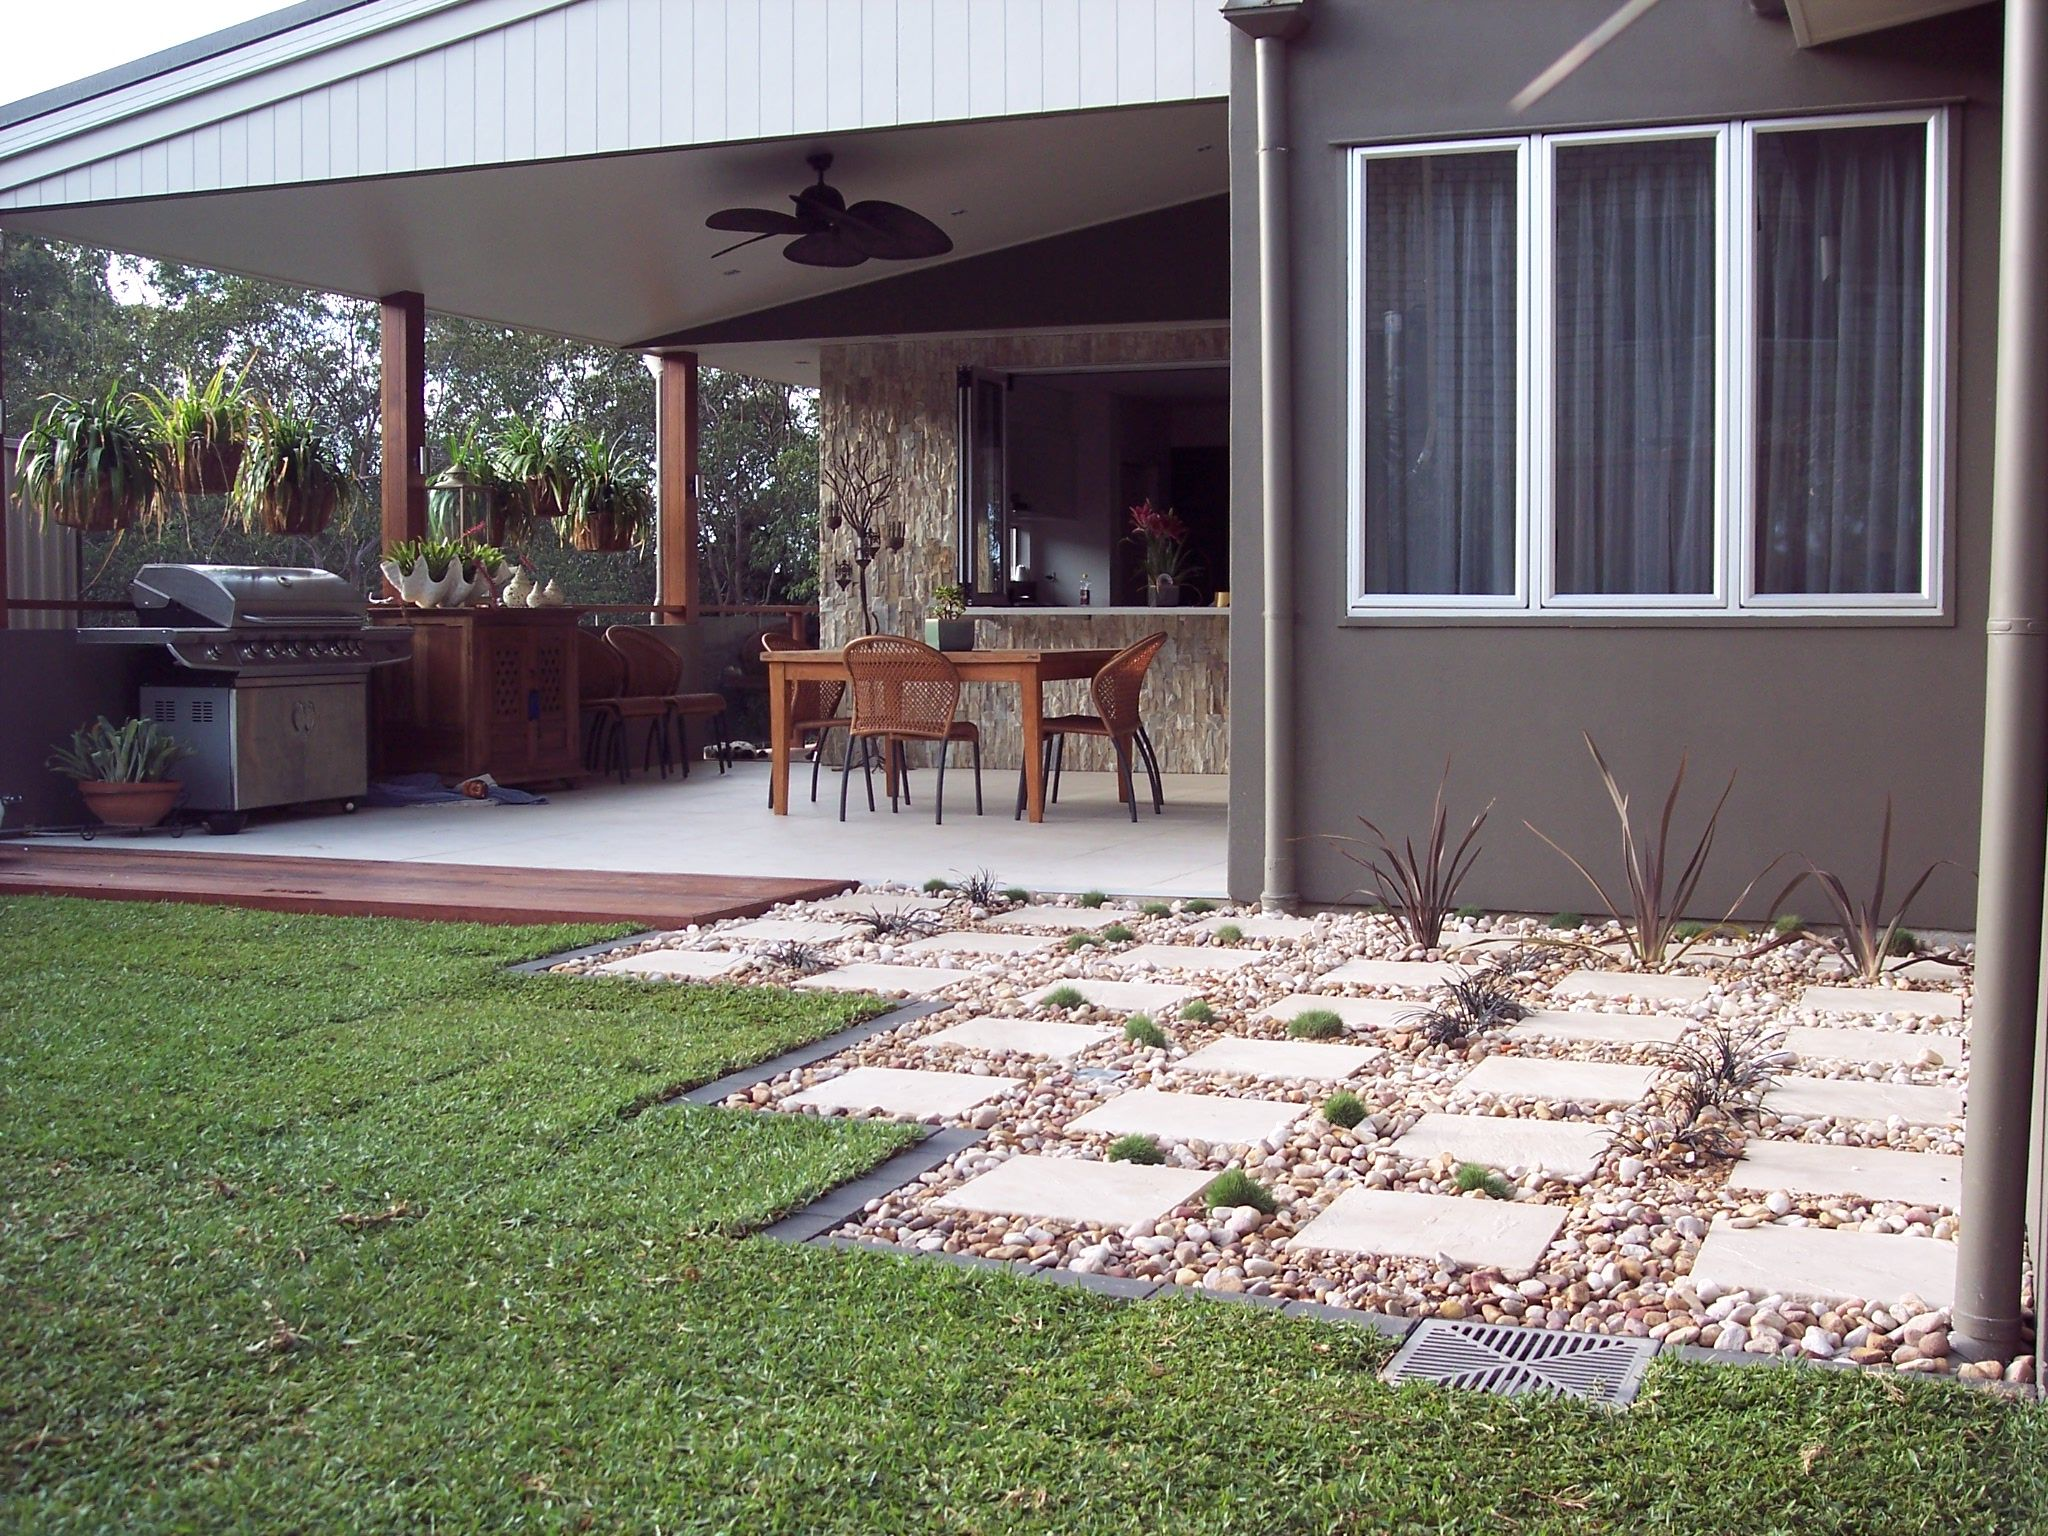 Low maintenance backyard landscaping ideas impressive for Low maintenance garden ideas pinterest